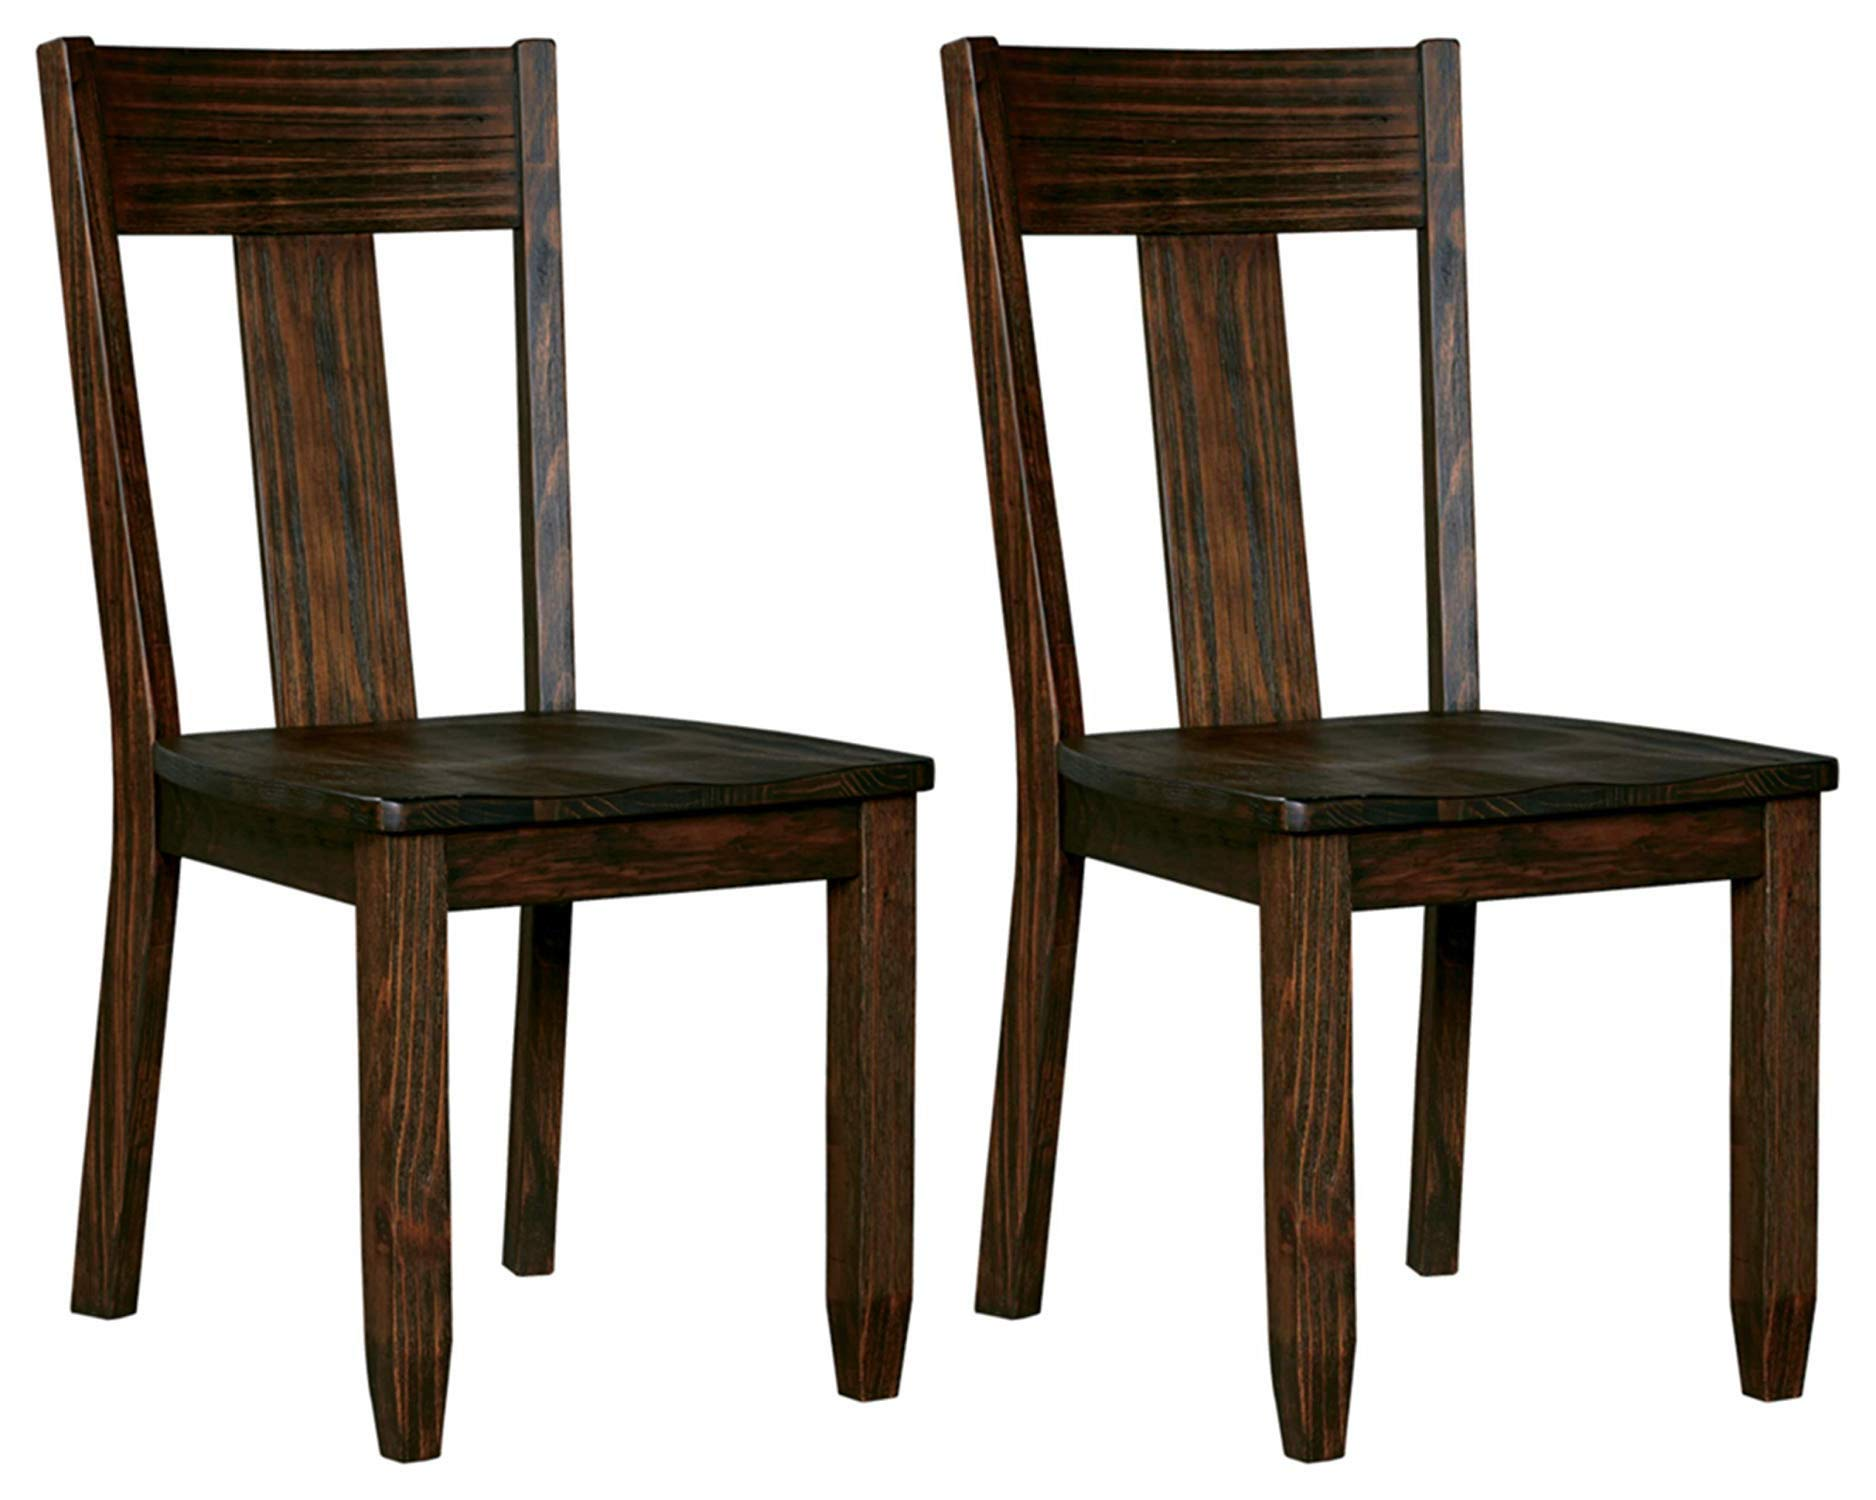 Ashley Furniture Signature Design - Trudell Dining Room Chair - 100% Pine Wood -  Set of 2 - Dark Brown by Signature Design by Ashley